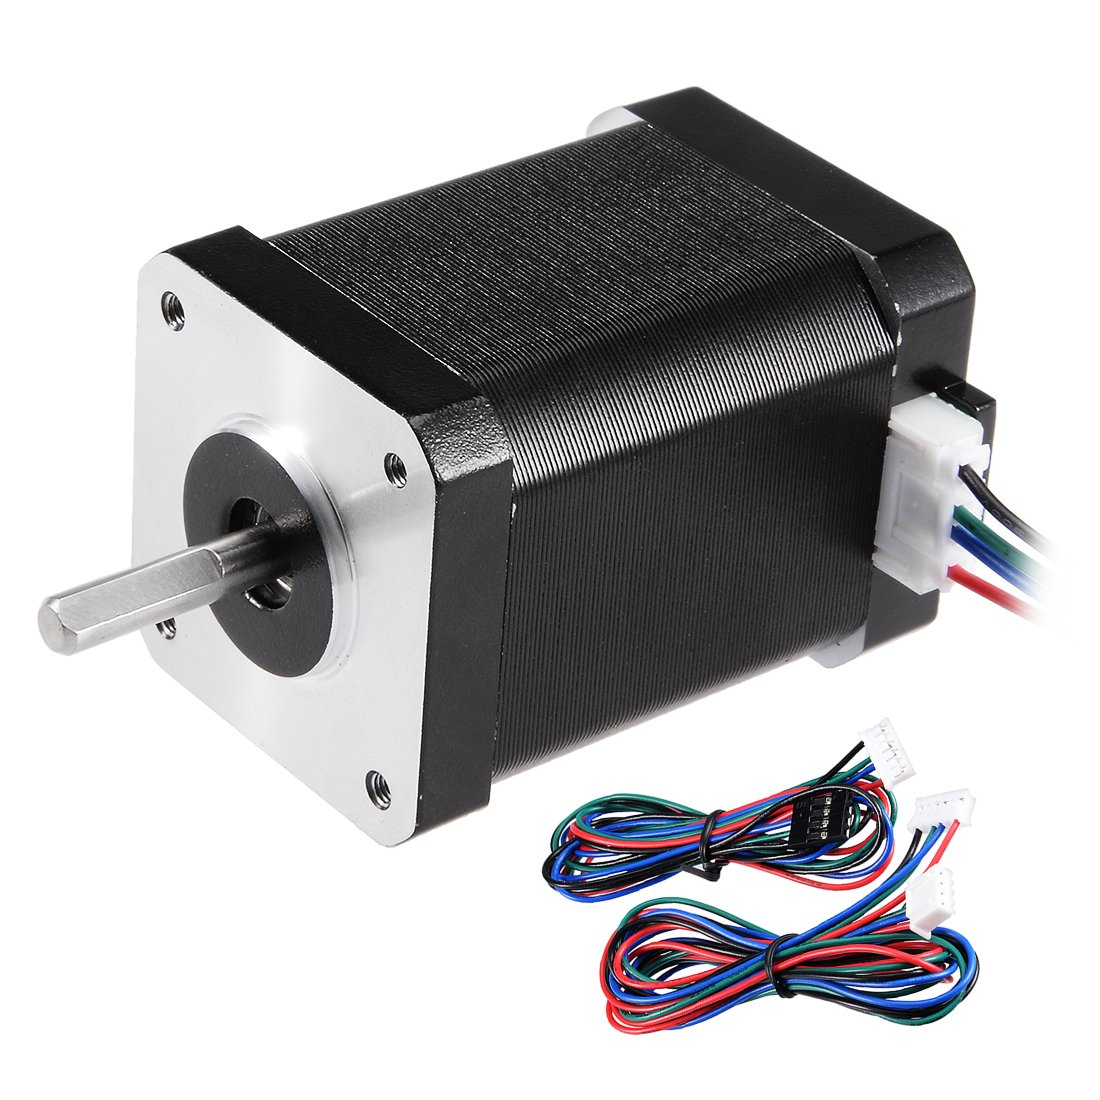 uxcell Stepper Motor Nema 17 Bipolar 20mm 0.65NM 1.2A 3.5V 4 Lead Cables for 3D Printer CNC Router Laser Lathe Machine Stage Light Control DIY Hobby